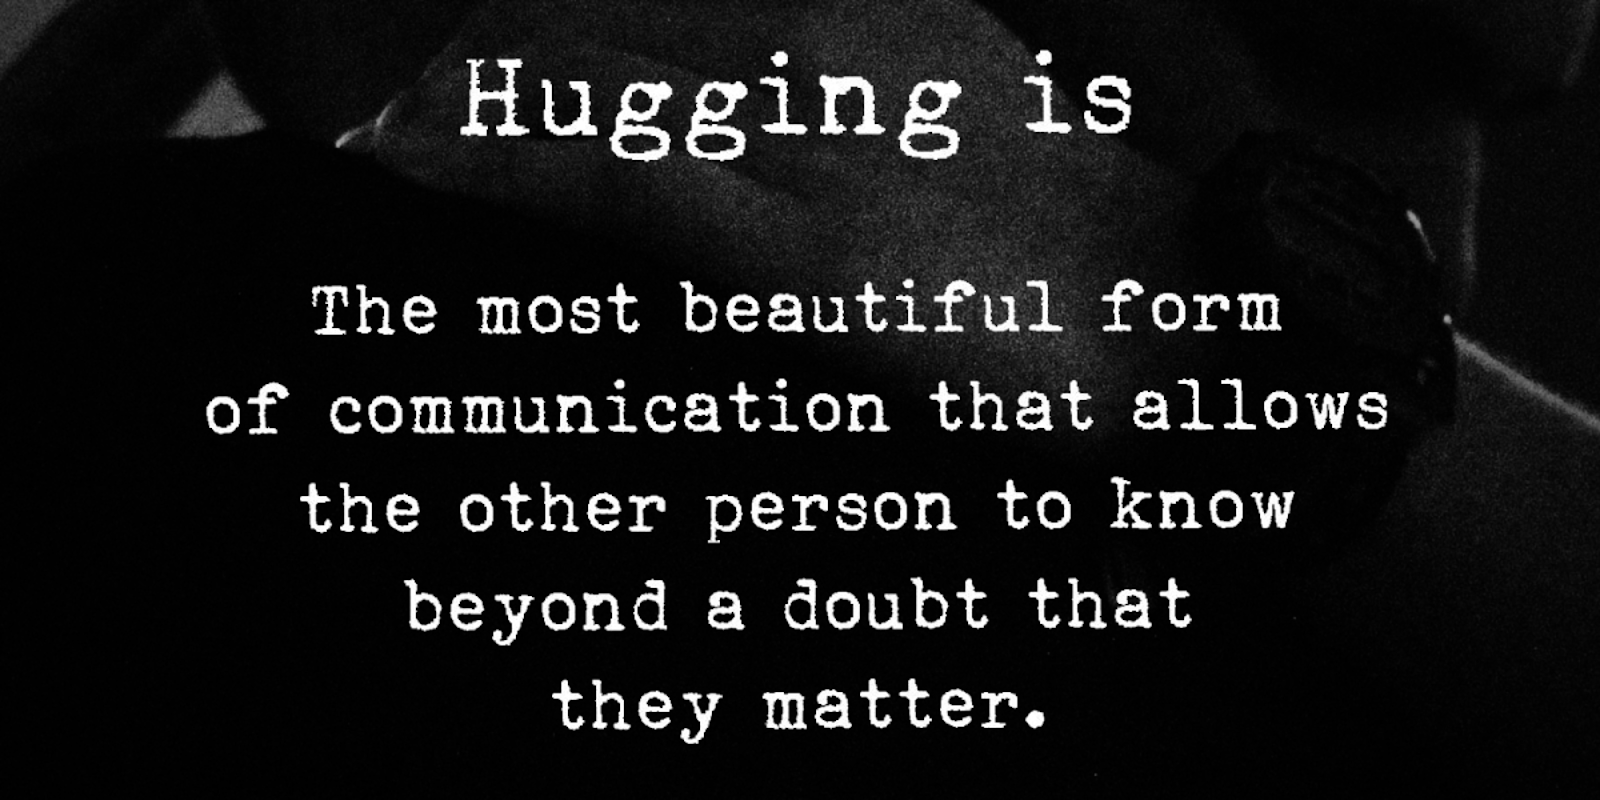 5 Reasons Why Hugging Is The Best Form Of Communication